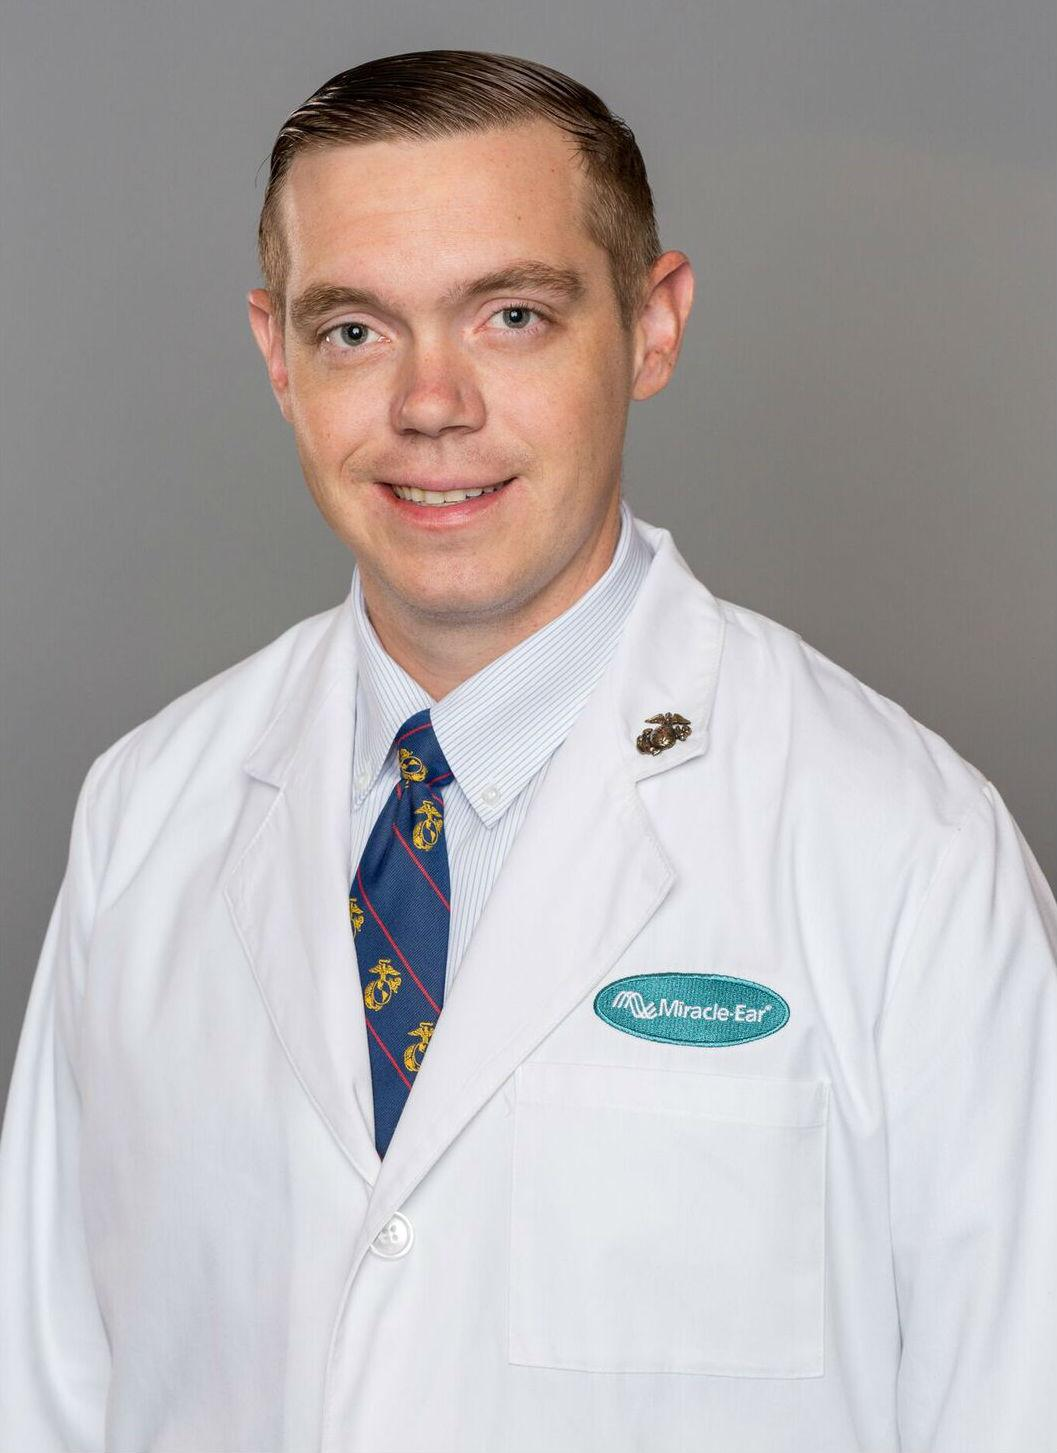 Profile Photo of Richard - Board Certified in Hearing Instrument Sciences